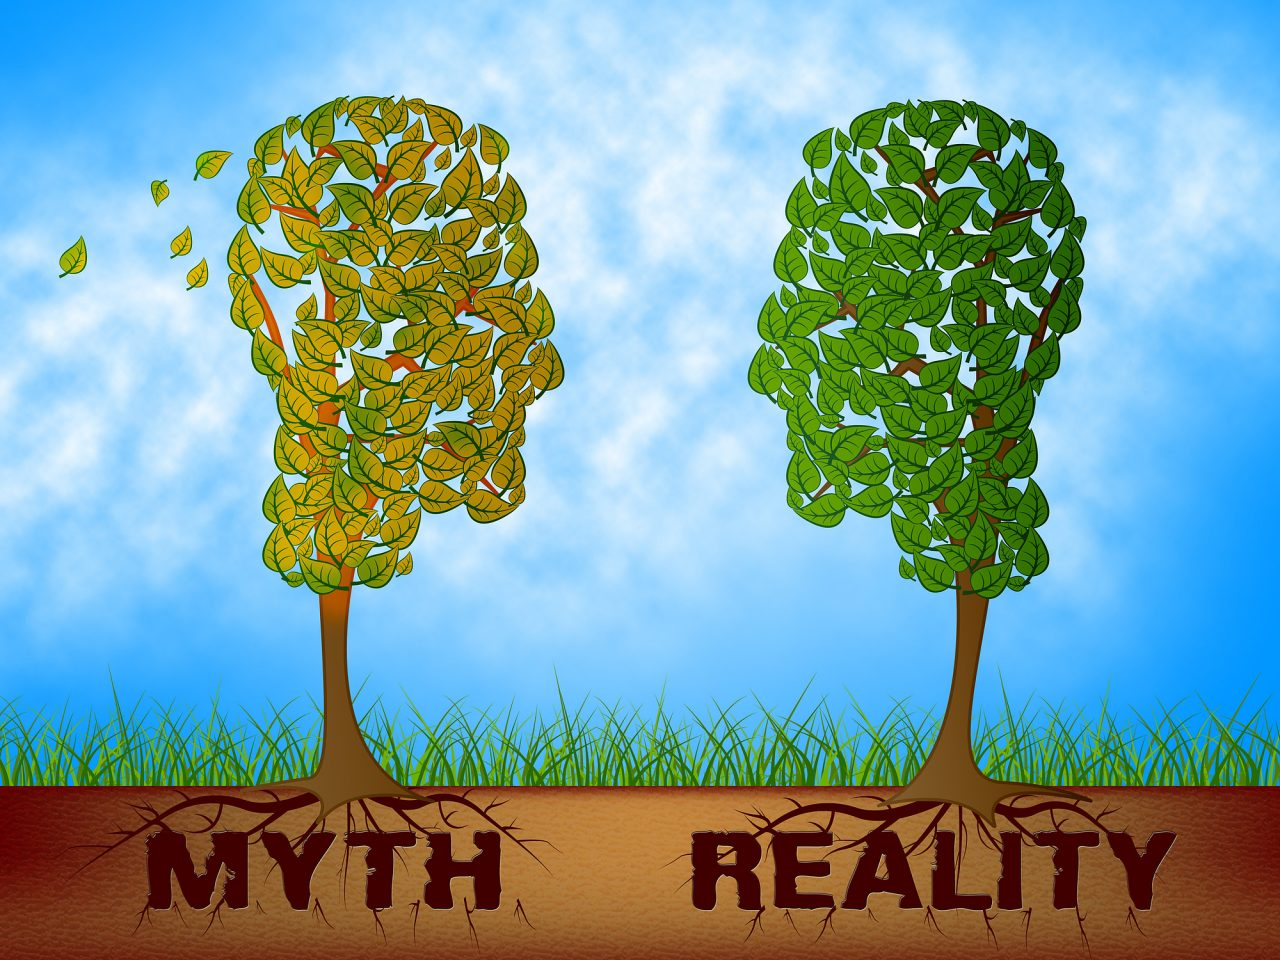 Myth Versus Reality Words Showing False Mythology Vs Real Life